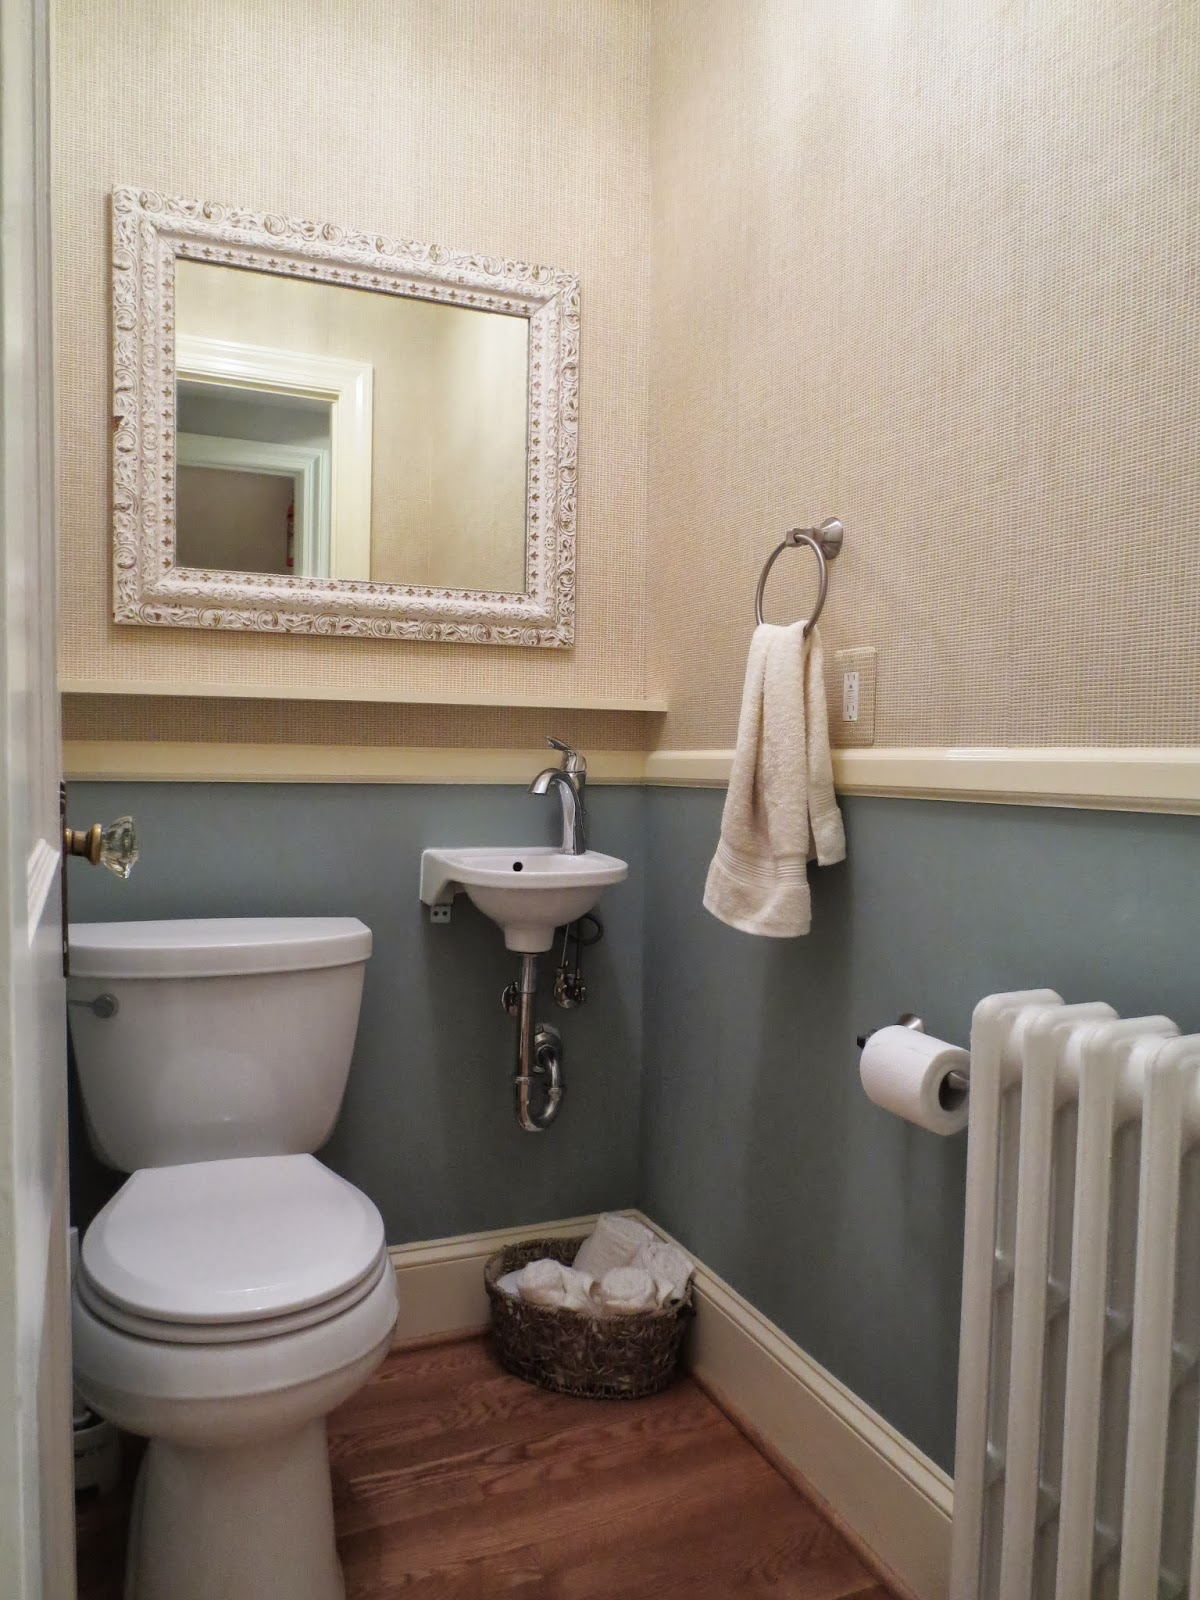 pictures of chair rails in bathrooms top gaming chairs row house refuge 1960 39s powder room updated